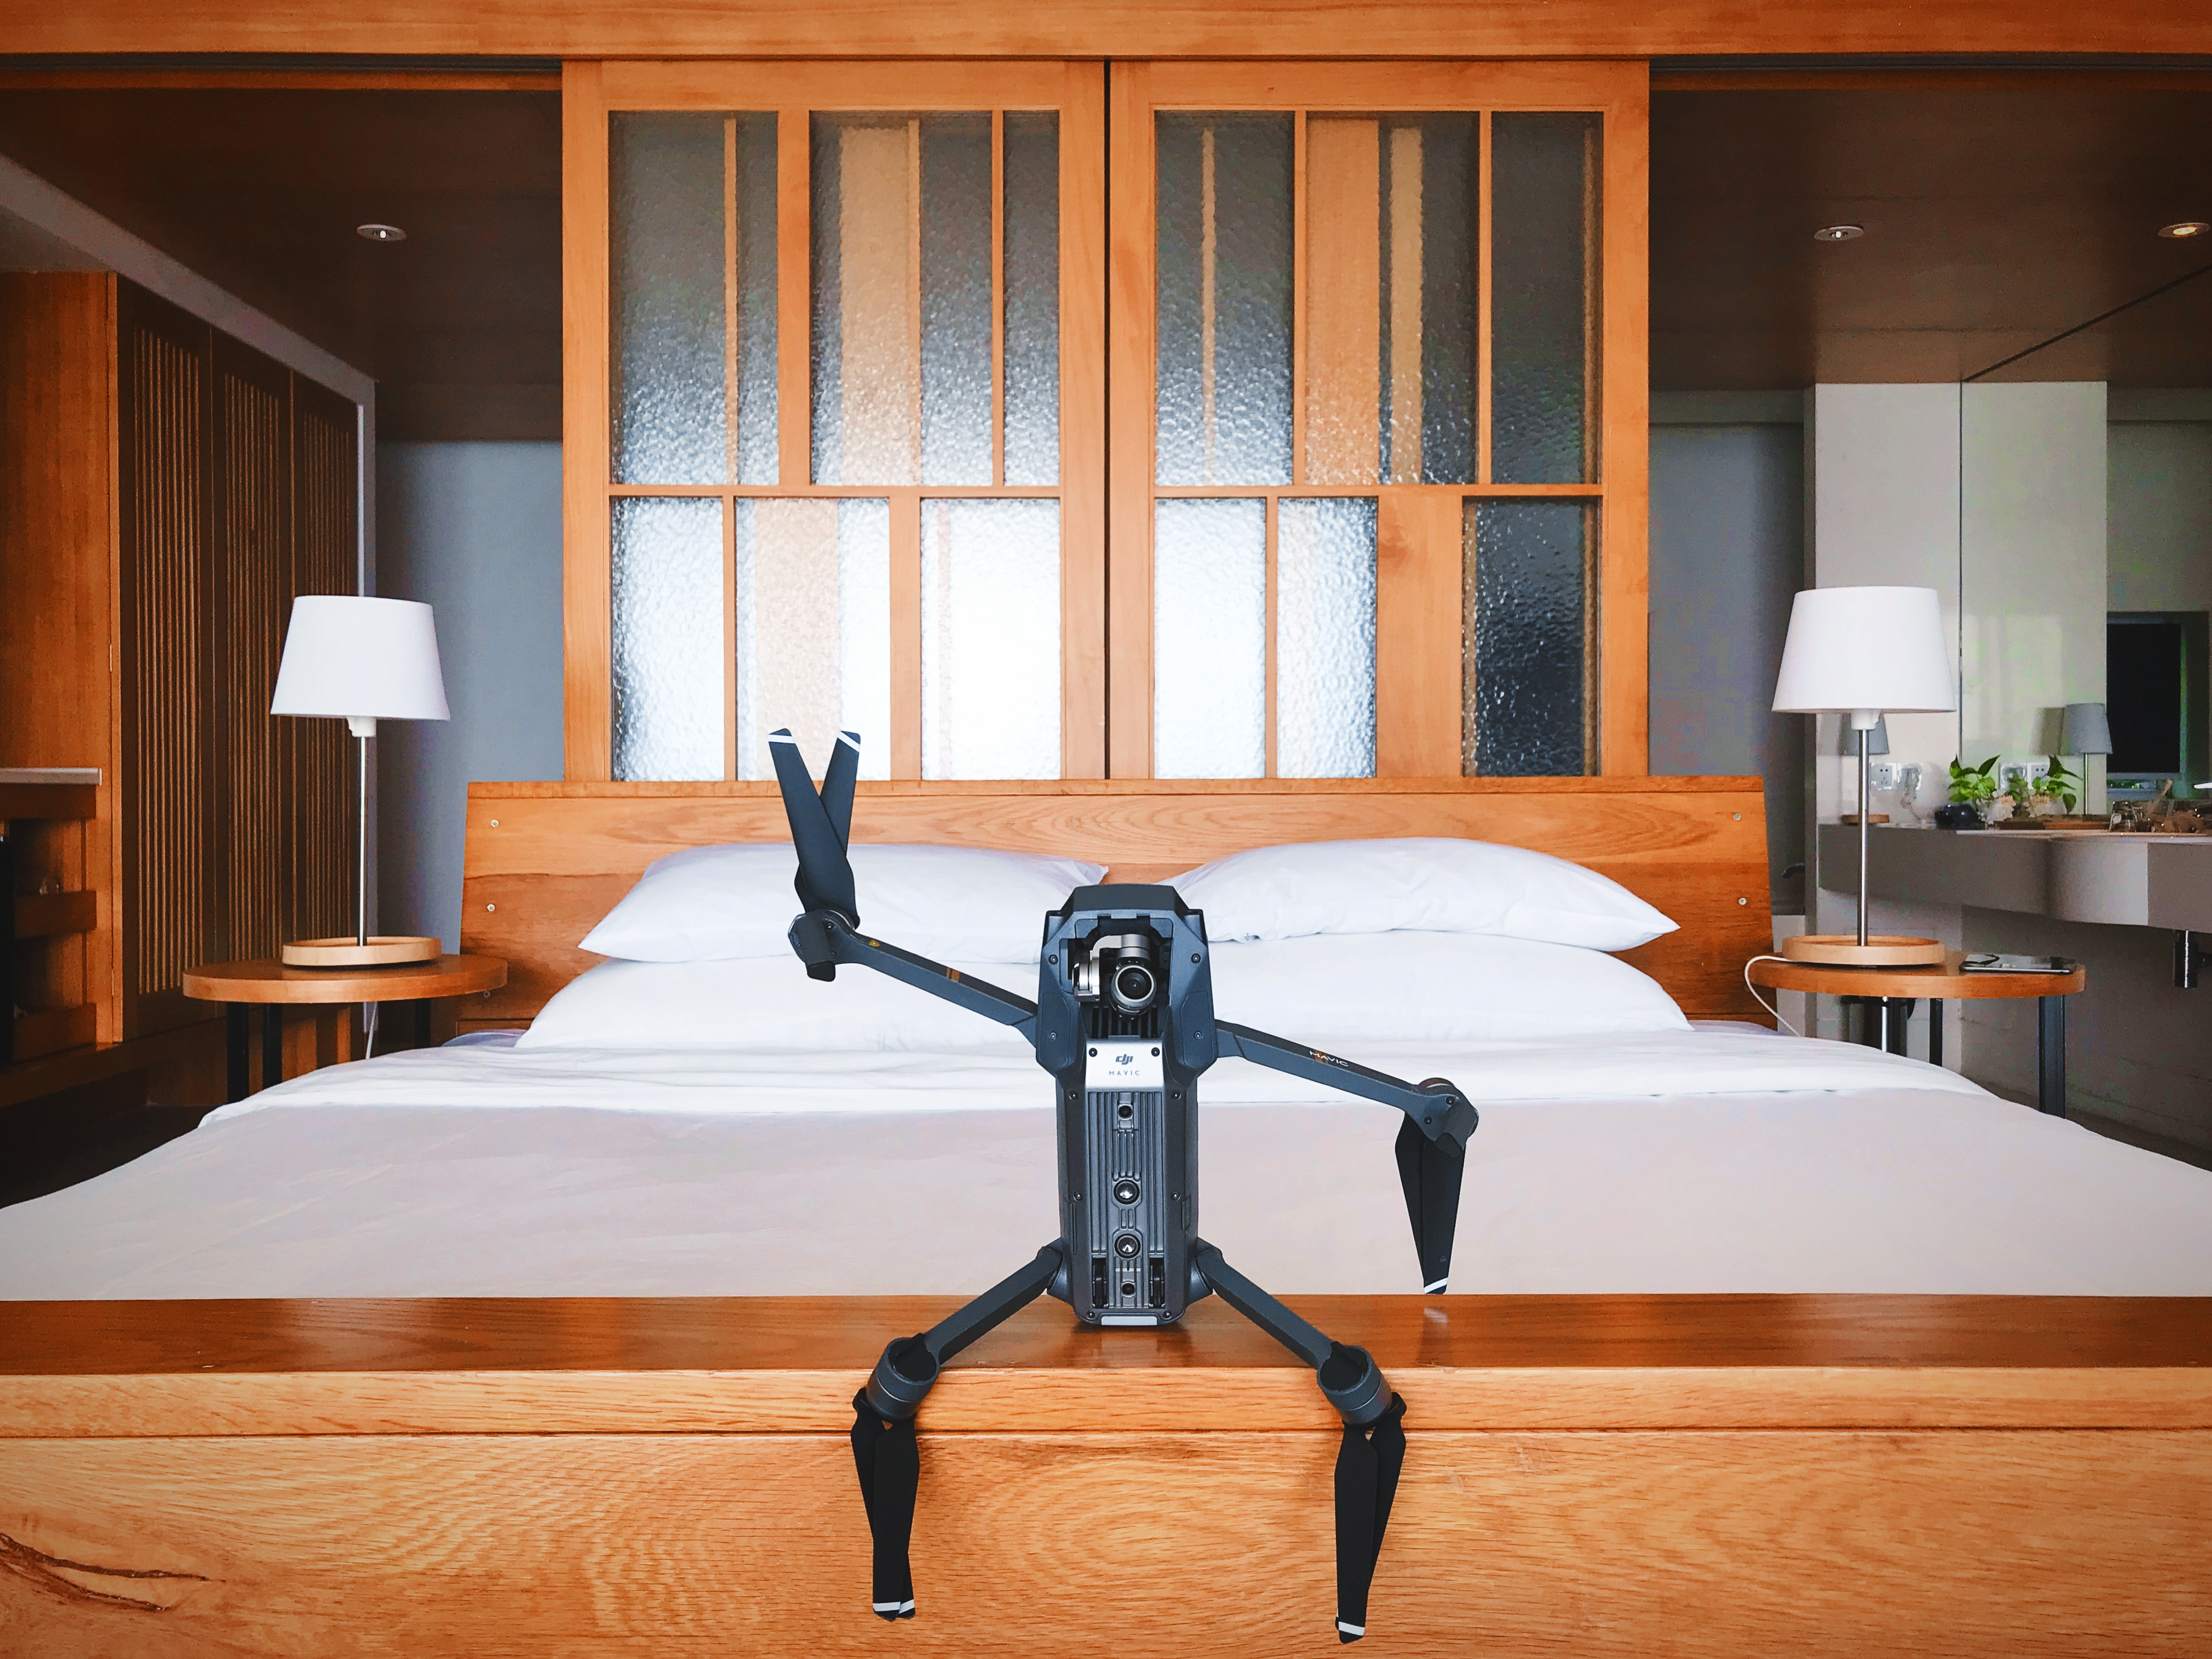 Personal home robot waving and sitting at the foot of a bed on it's wooden frame at the foot of a